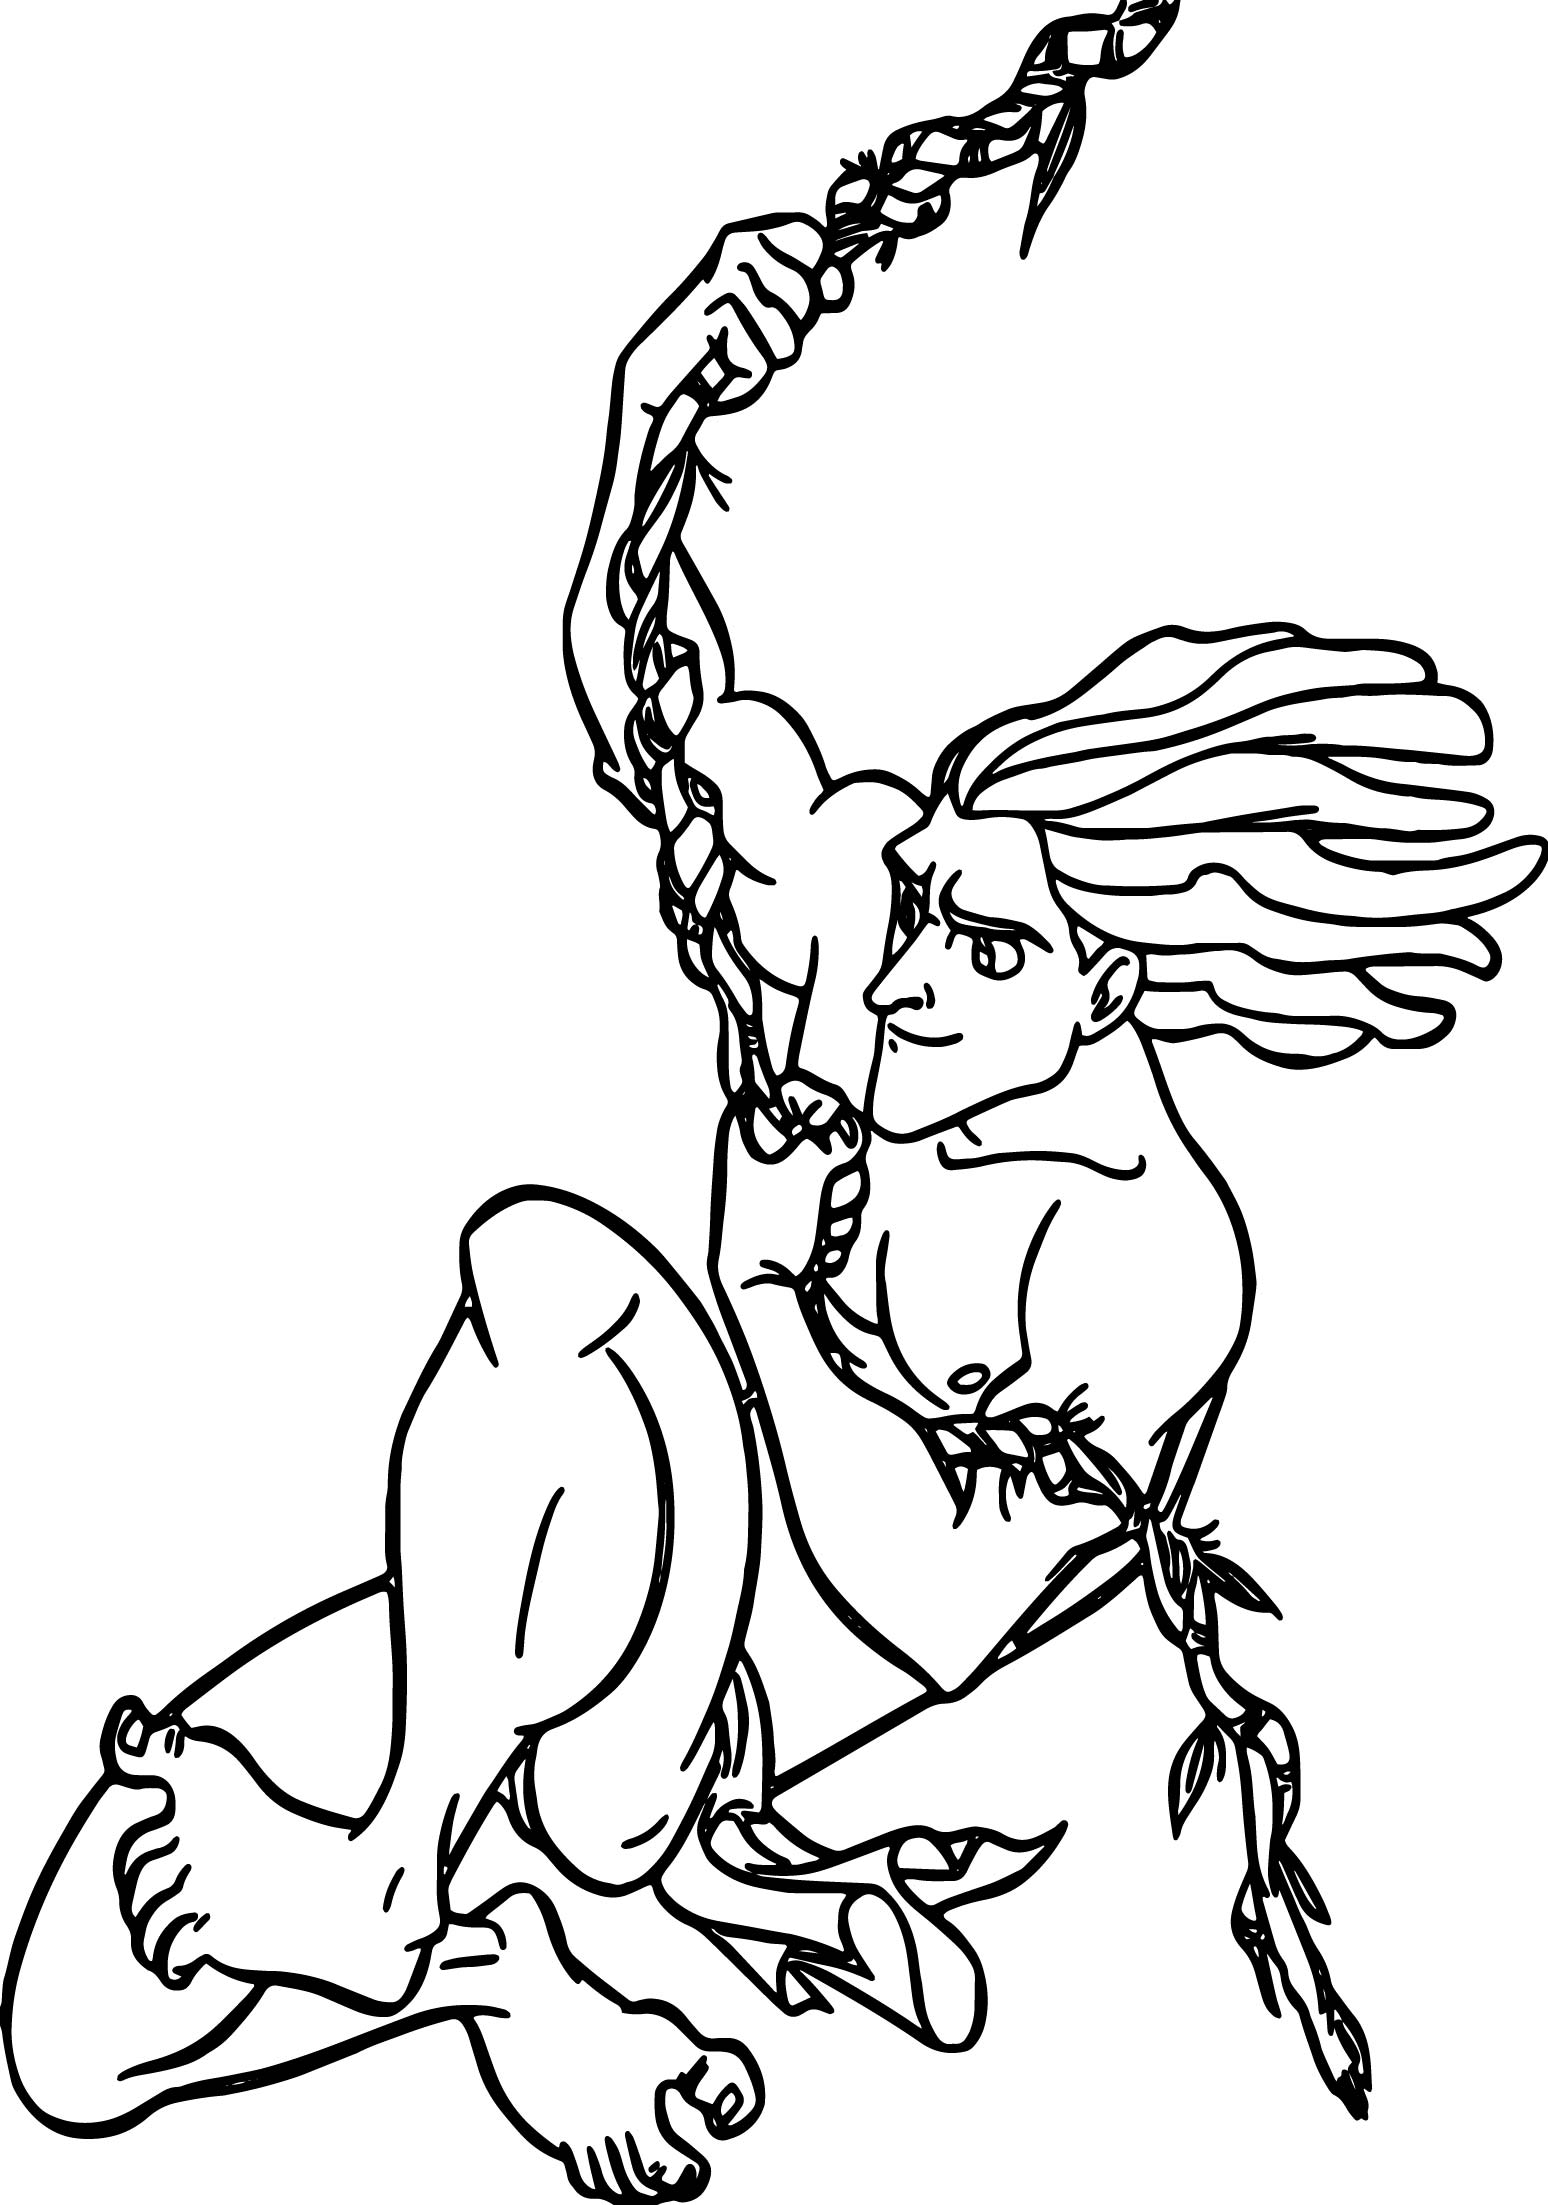 Tarzan Vine Rope Coloring Page